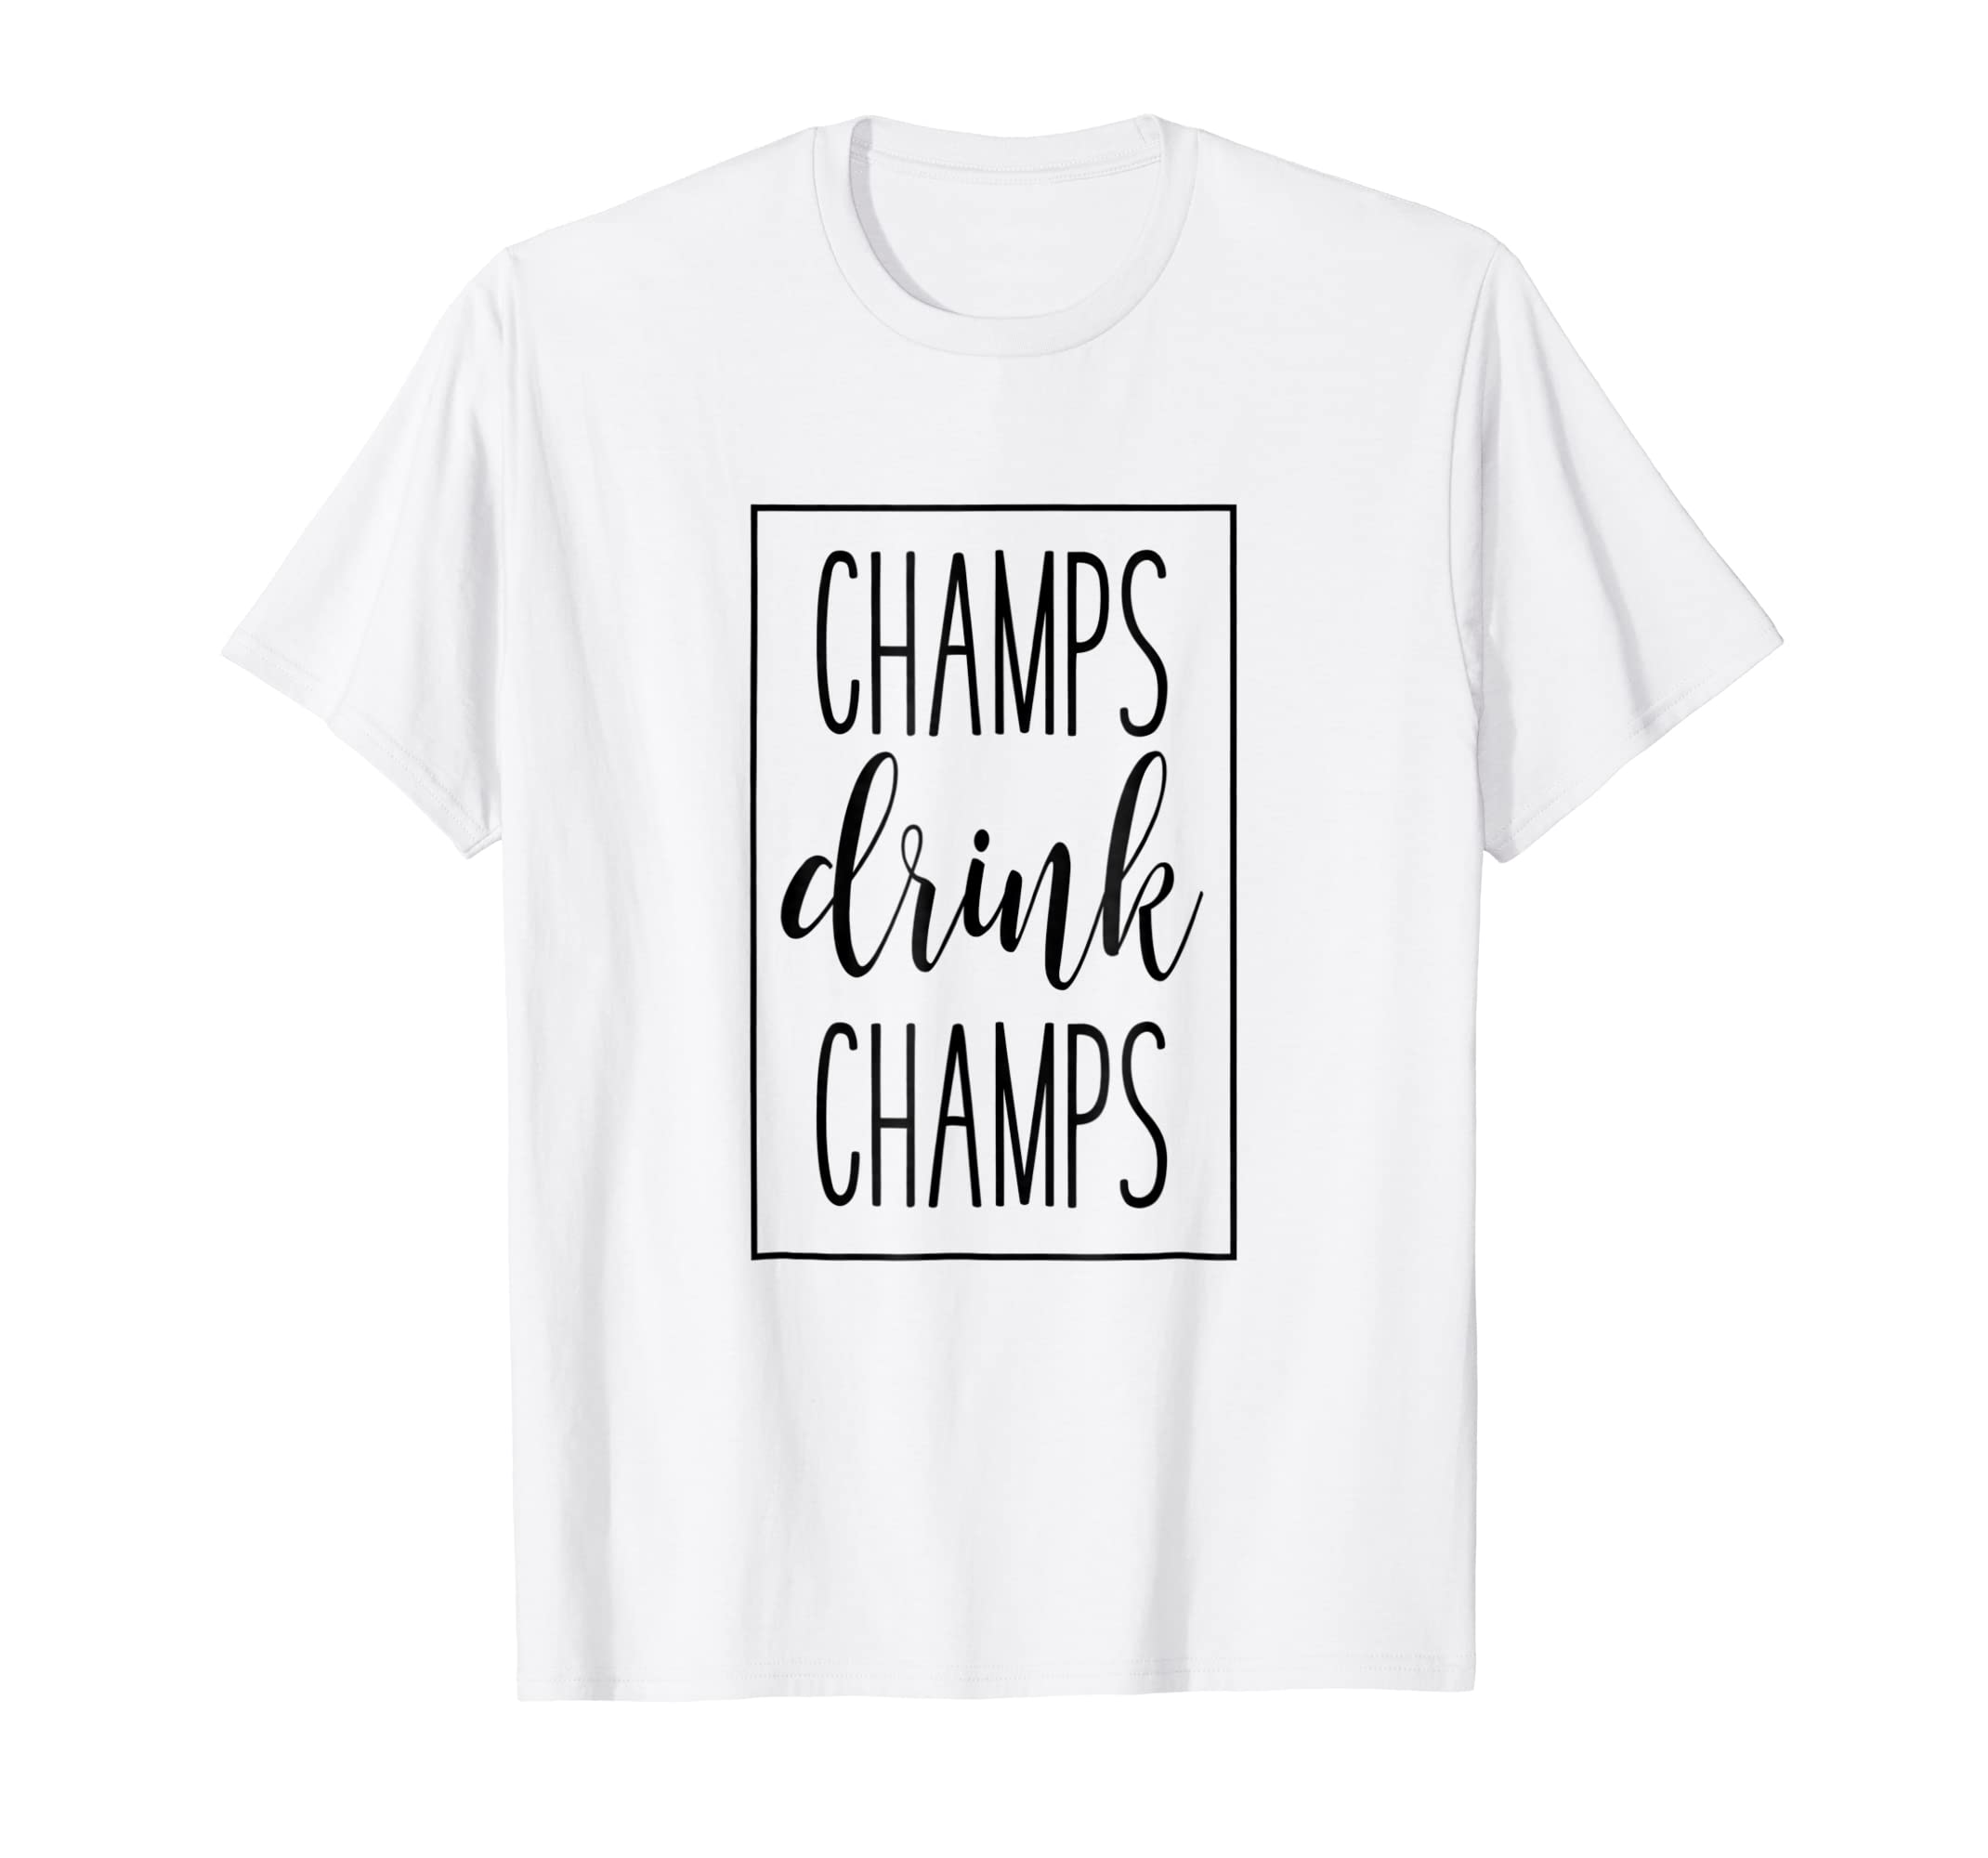 d5530bf98 Amazon.com: Champs Drink Champs - Funny French Champagne Wine T-Shirt:  Clothing